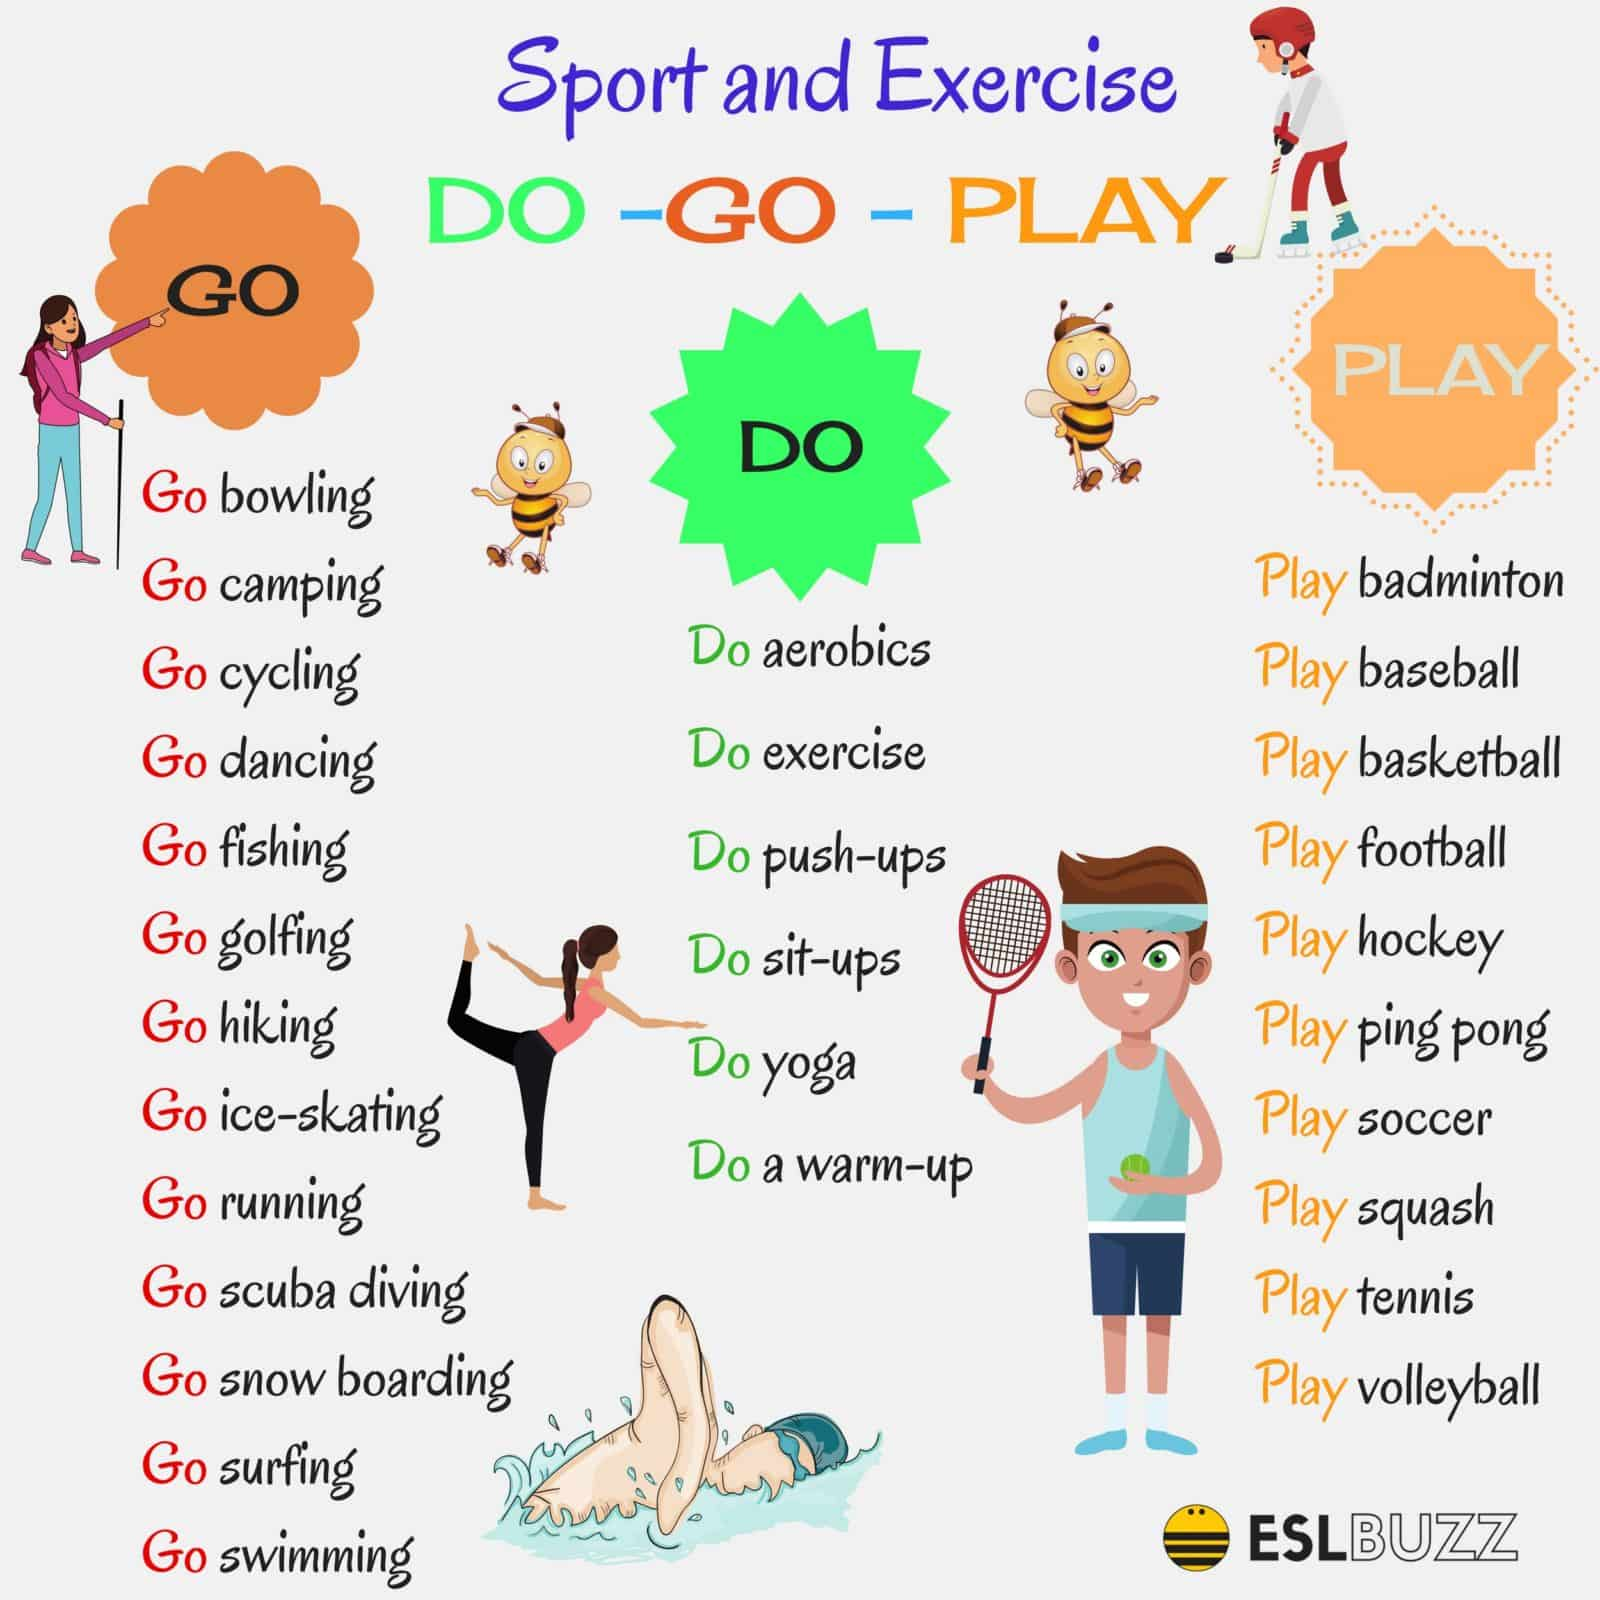 How To Use Do Amp Go And Play With Sports And Activities